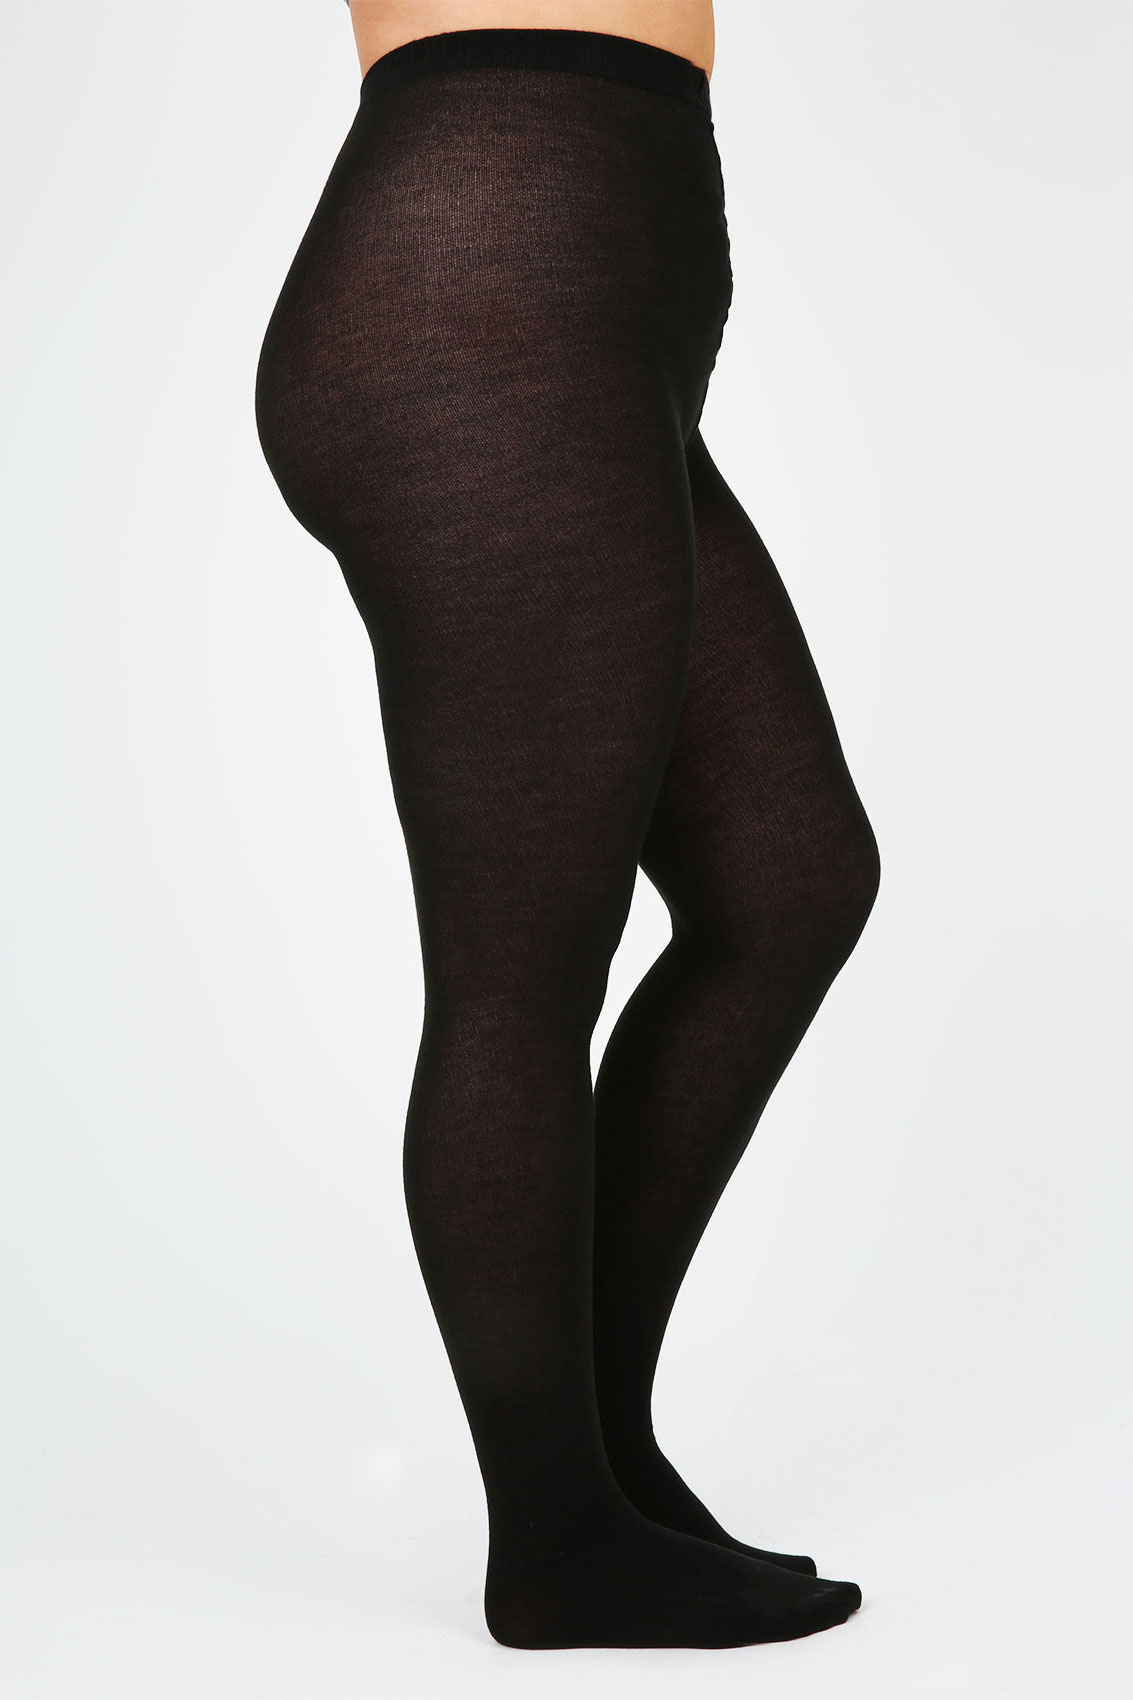 Thick Tights can be found in the material, color, and clothing size that you need. Decide from assorted regular and plus sizes. Look for colors like black as well as others.